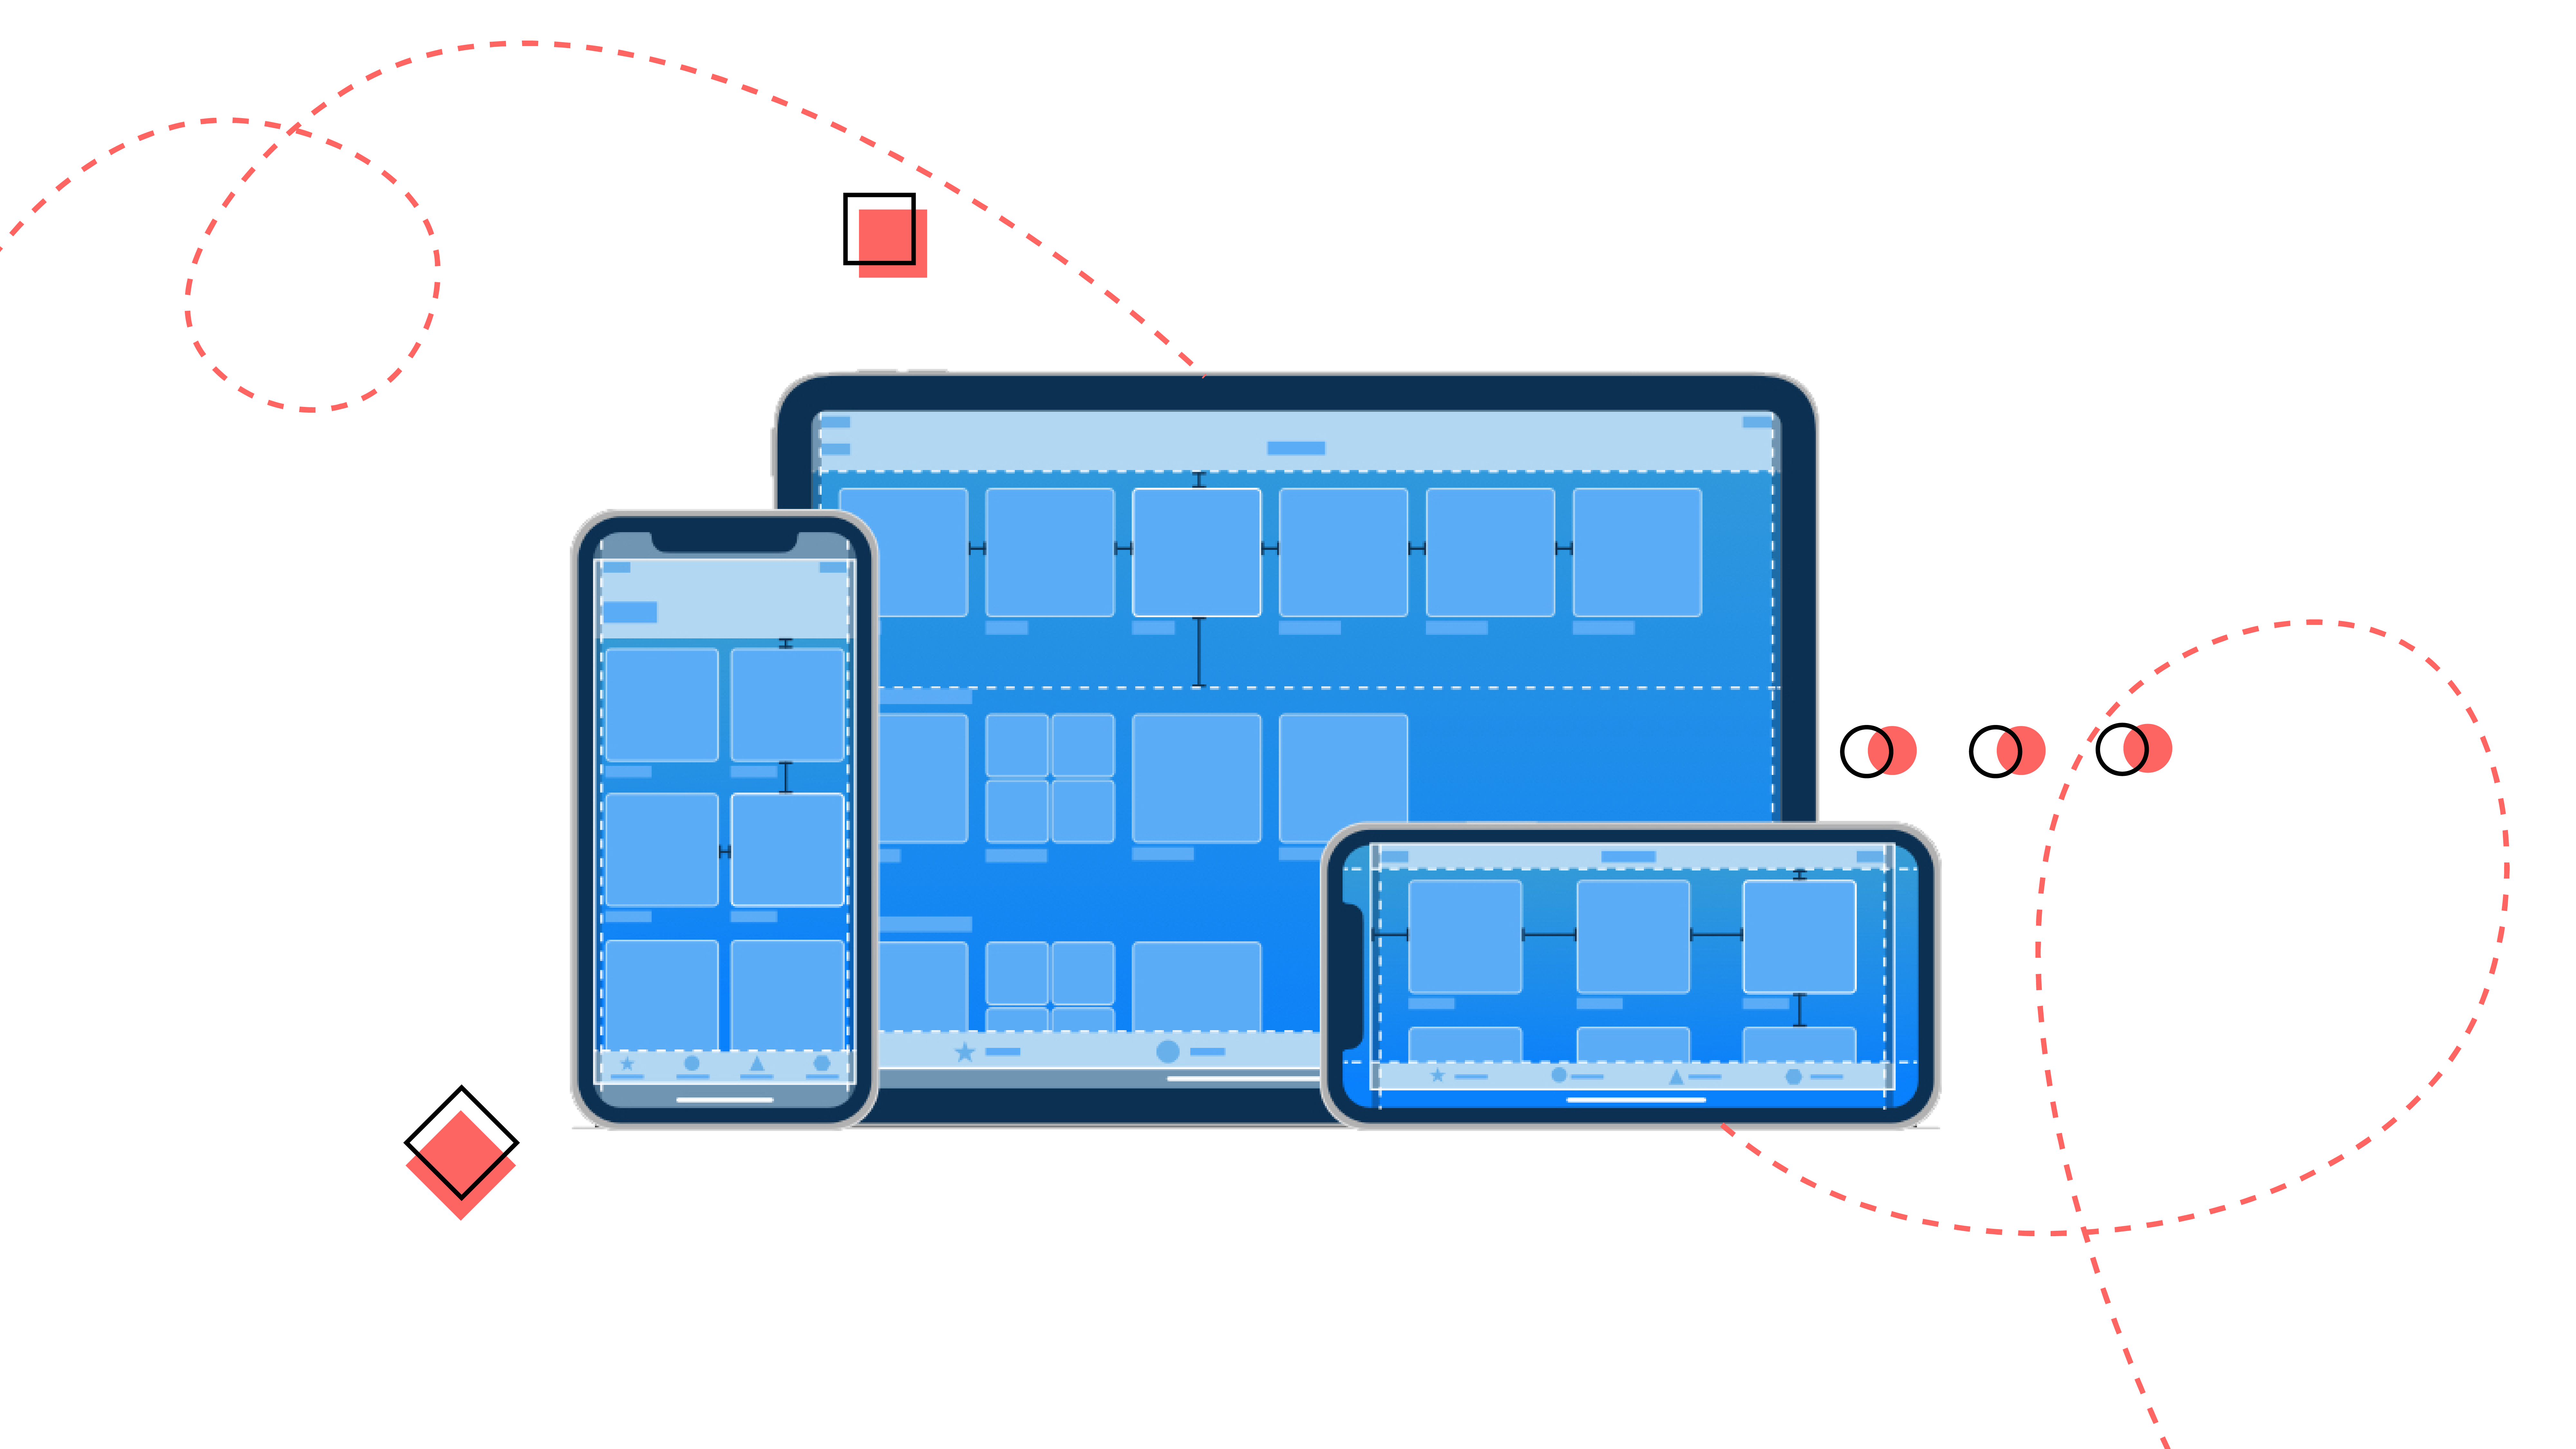 Apple design system example